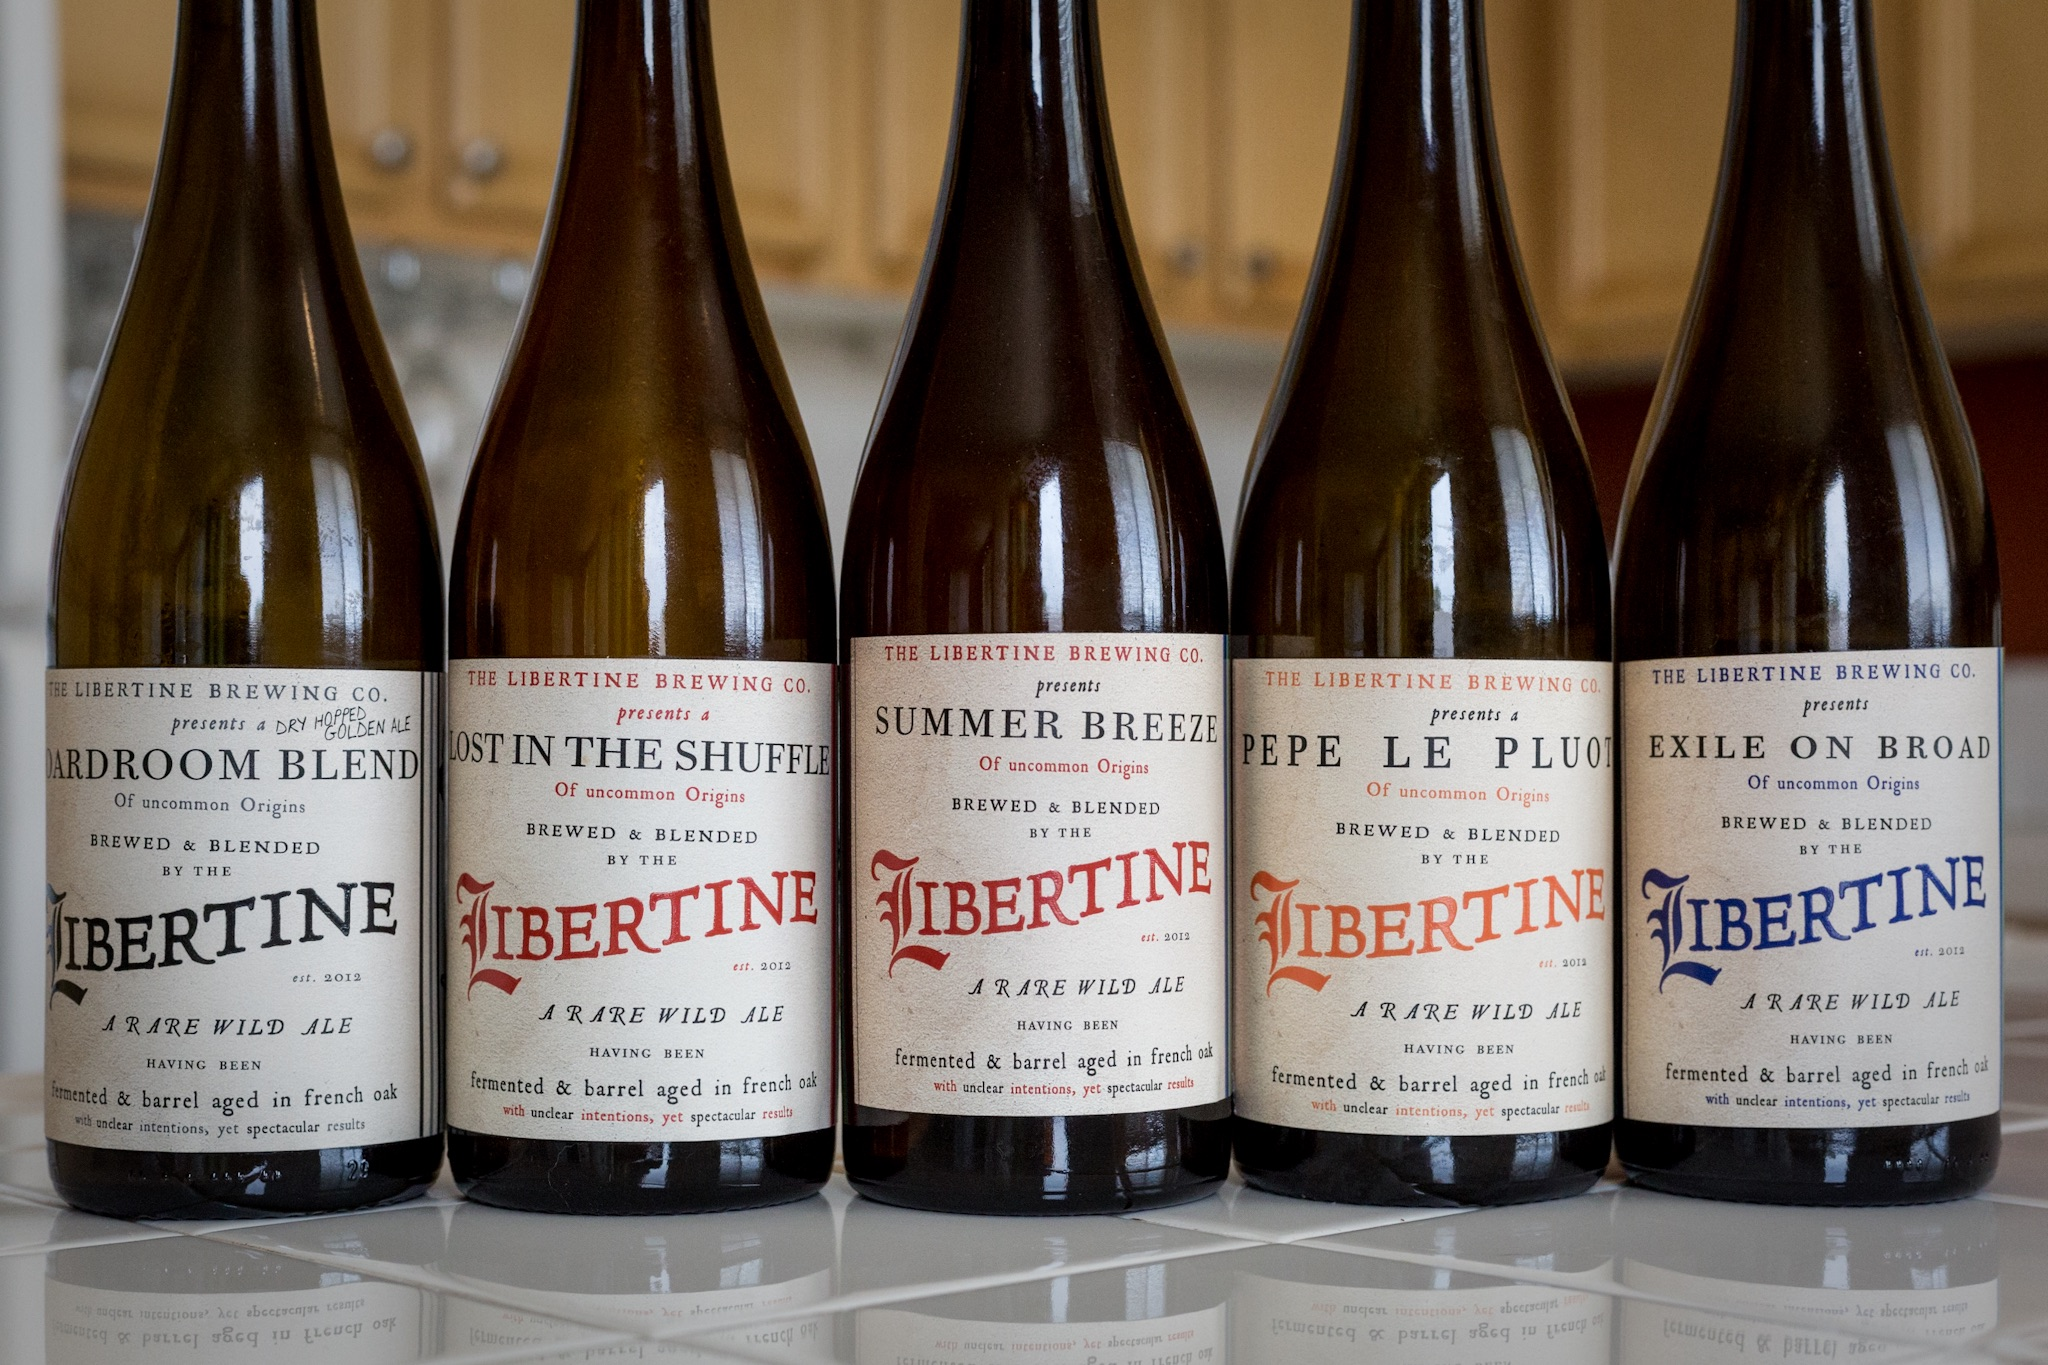 The Libertine Brewing Company